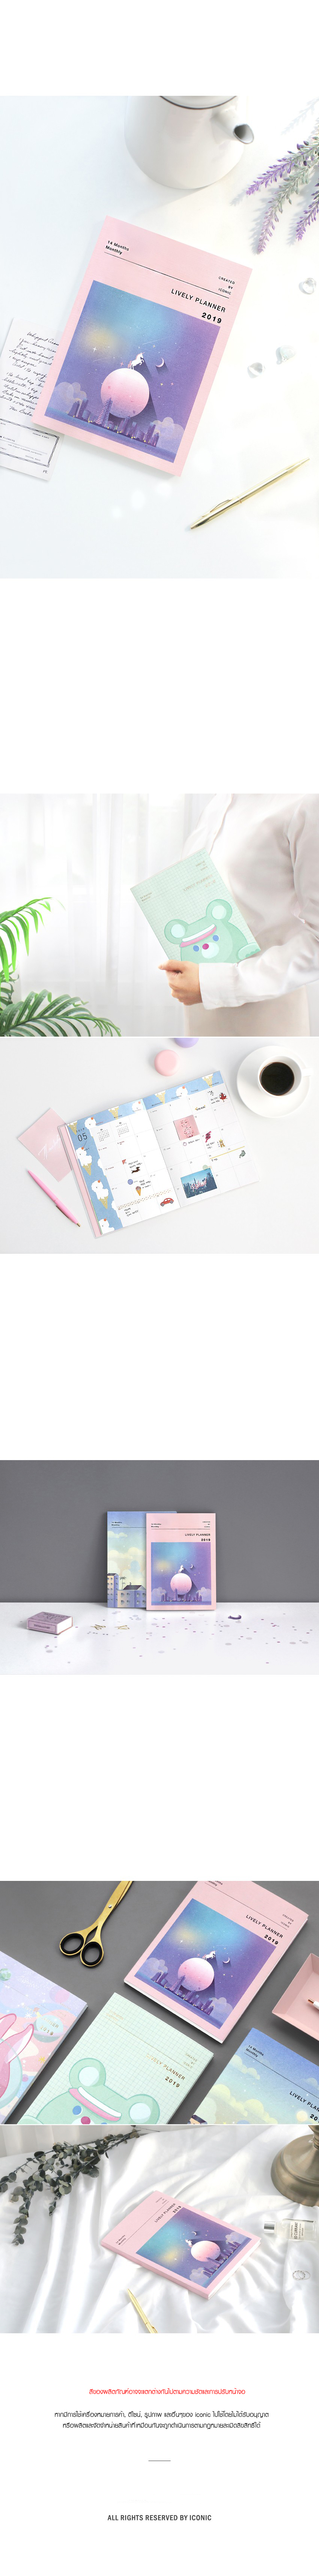 lively-monthly-planner-2019-6.jpg